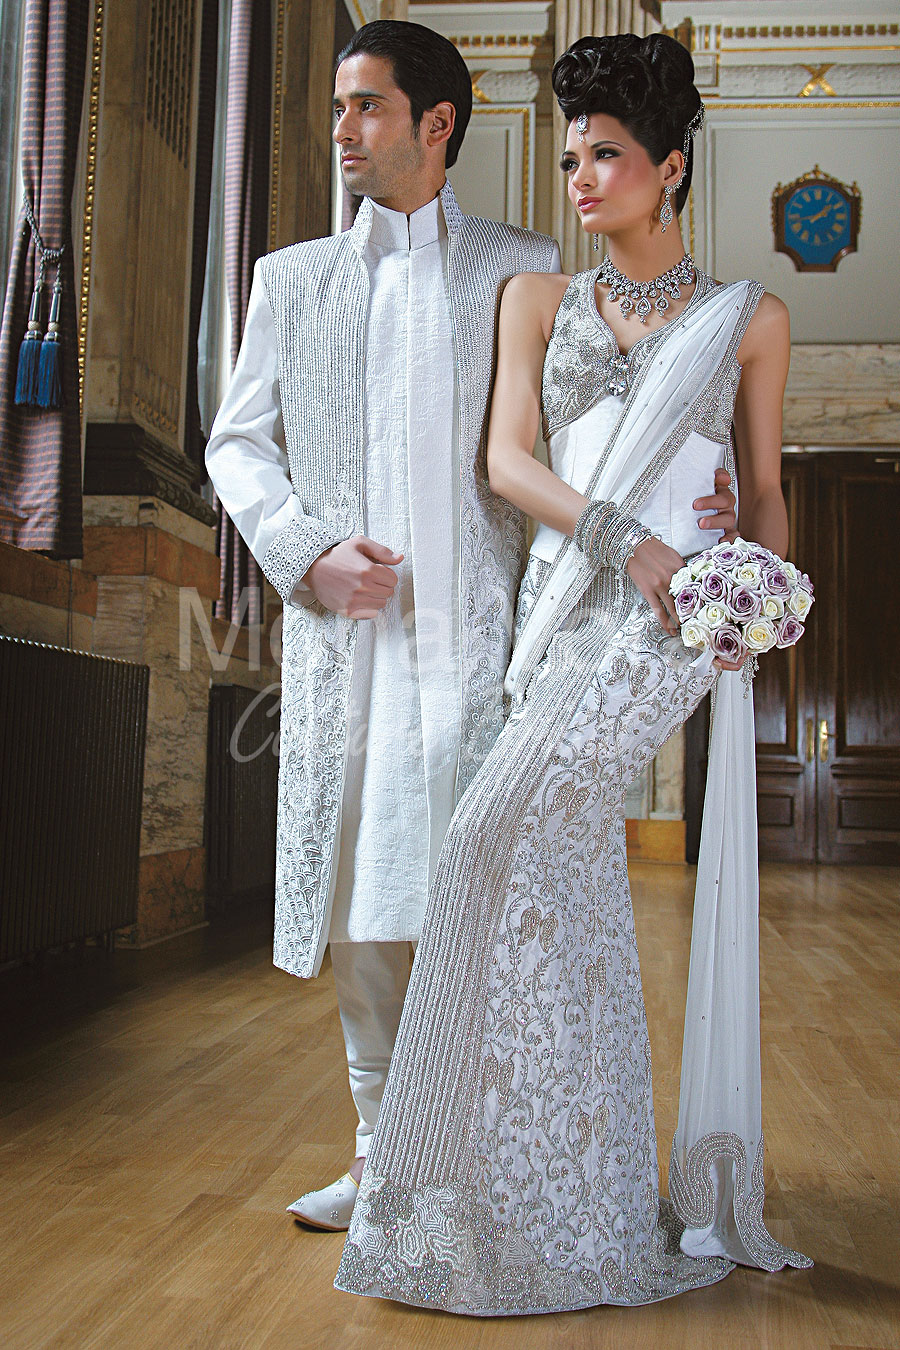 White Wedding Suits for Grooms Online. Asian Grooms White Wedding ...